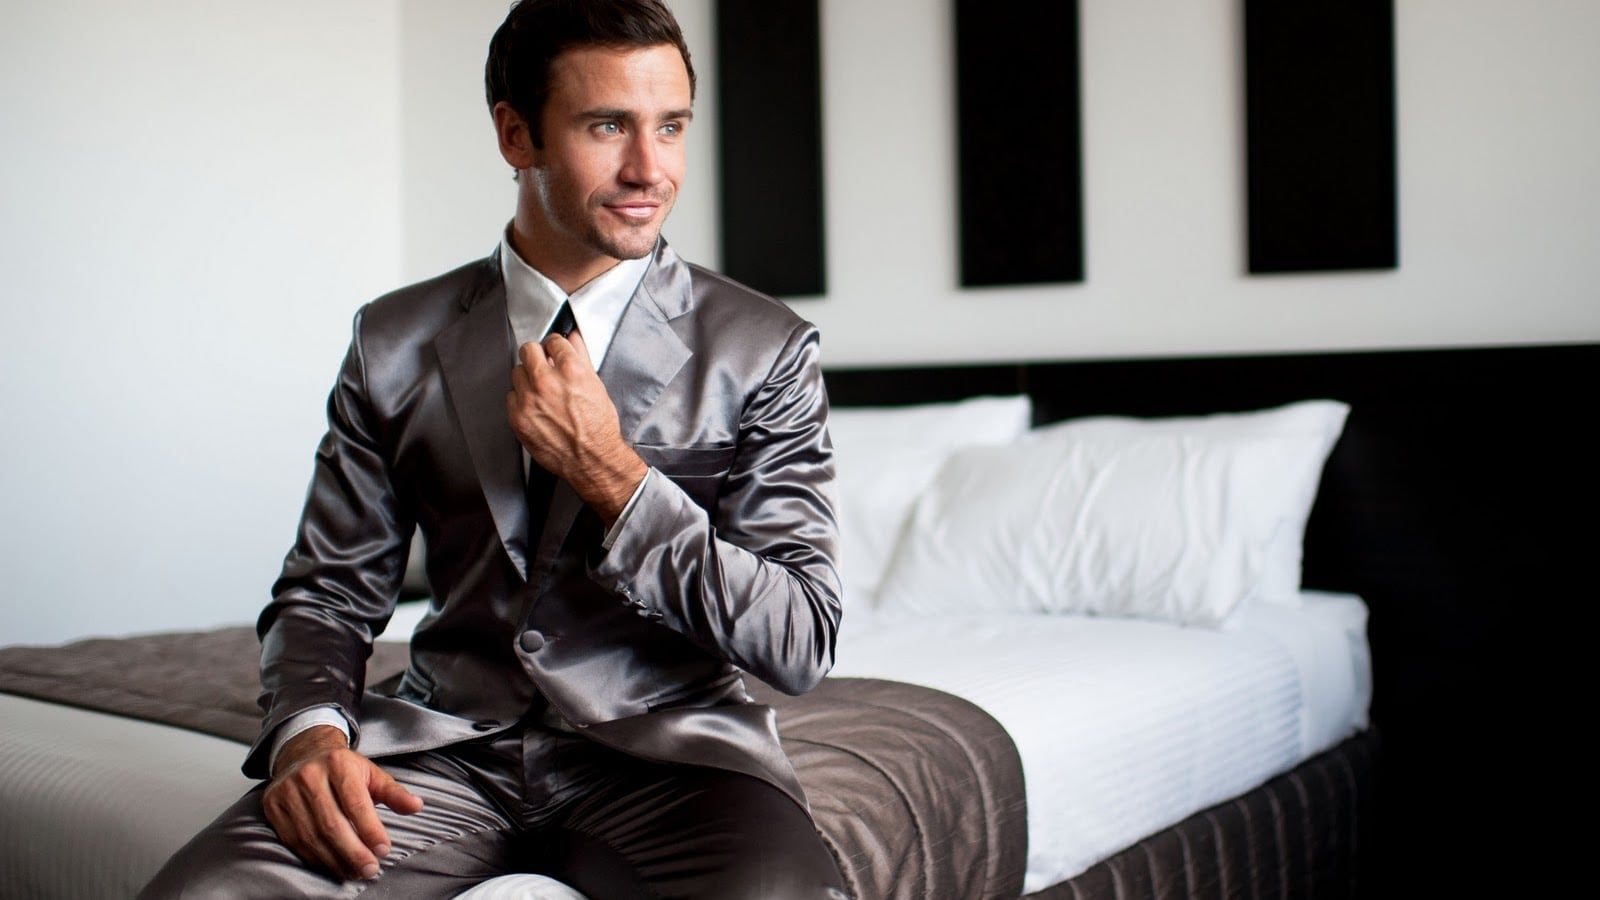 Suitjamas Designer Unisex Pajamas use a satin-cotton blend that goes from night to day